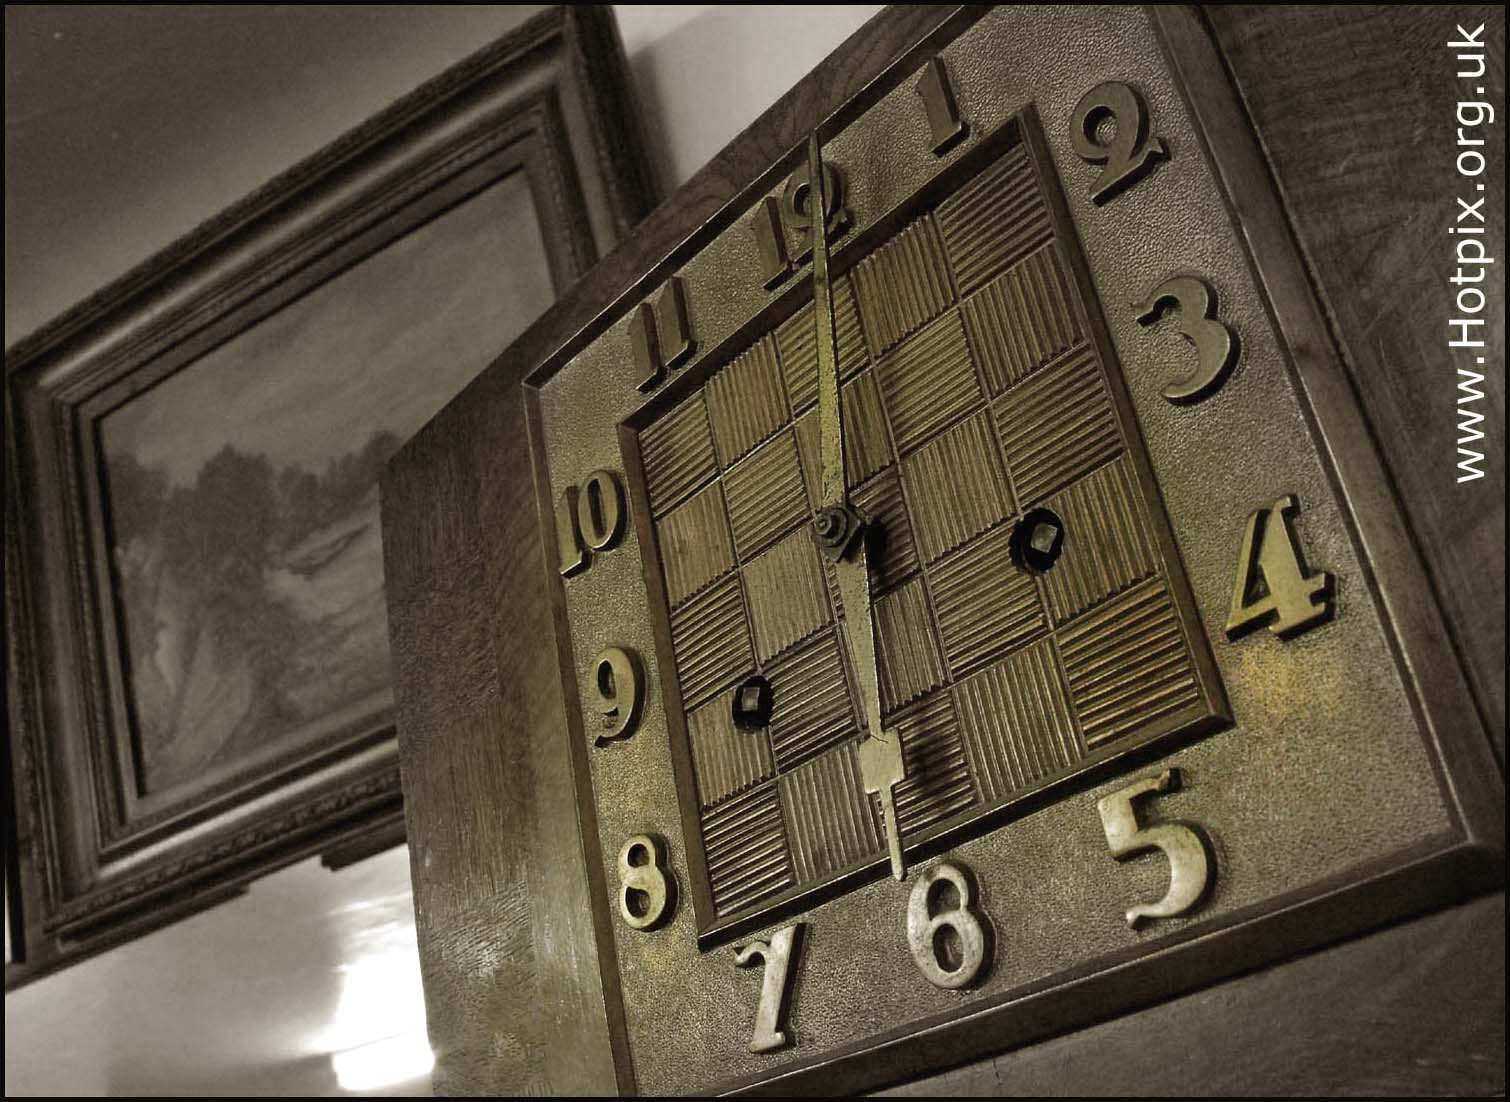 old,granny,grannies,clock,time,piece,timepiece,antique,mantle,england,smiths,wood,metal,sepia,b/w,black,white,brass,hands,numbers,numerals,living,room,picture,wooden,mantel,edwardian,english,british,empire,this photo rocks,clocks,horloge,reloj,orologio,Taktgeber,hotpics,hotpic,hotpick,hotpicks,stillife,stilllife,still,life,stuff,sex,sexy,hotpix!